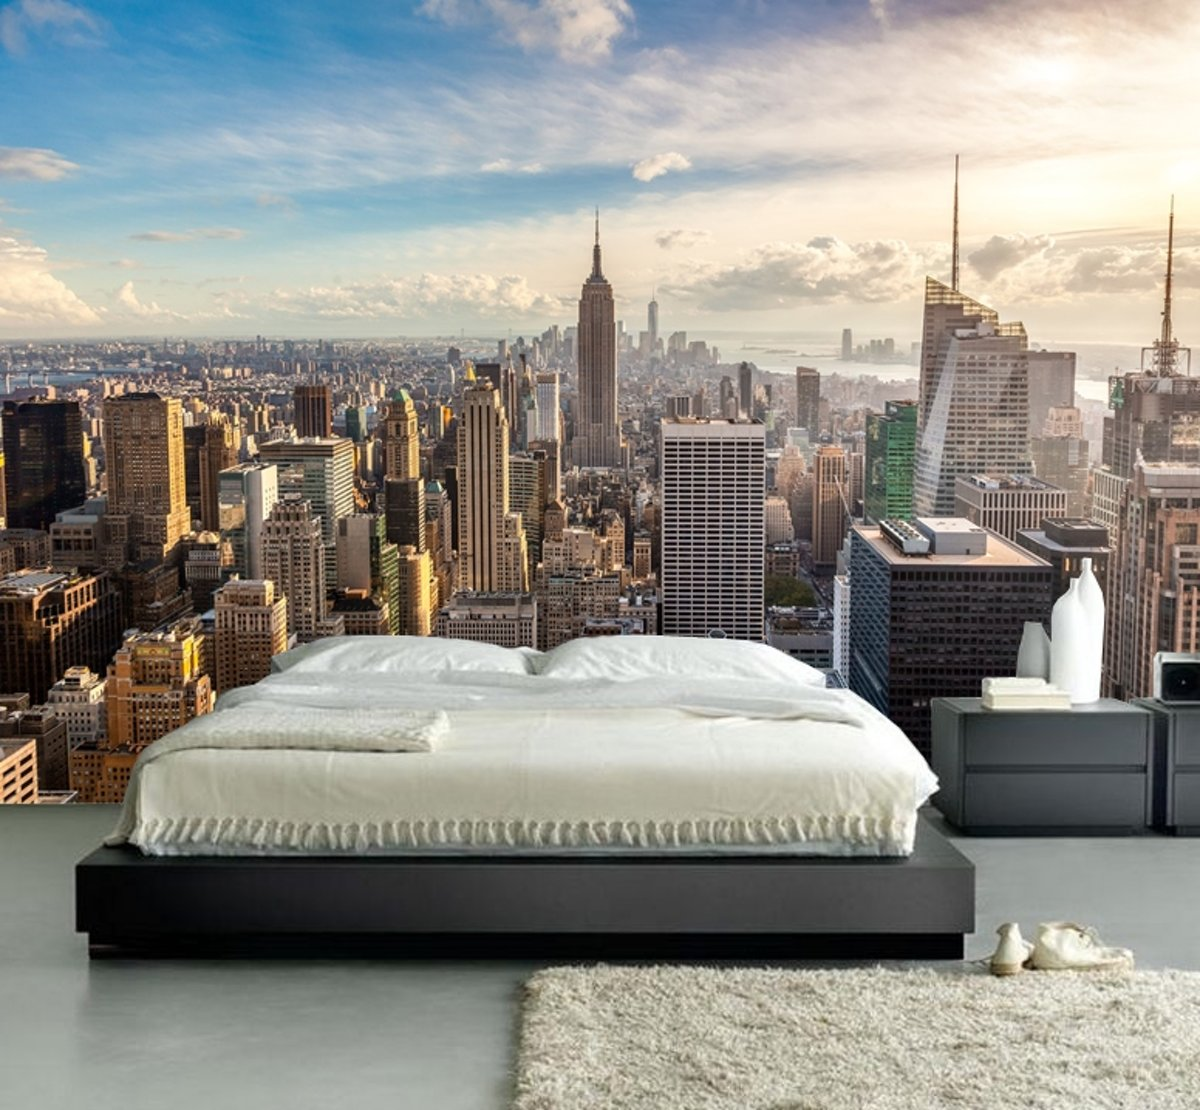 Muurposters New York.Bol Com Fotobehang Muurposter New York 350 X 260 Cm Art 97044